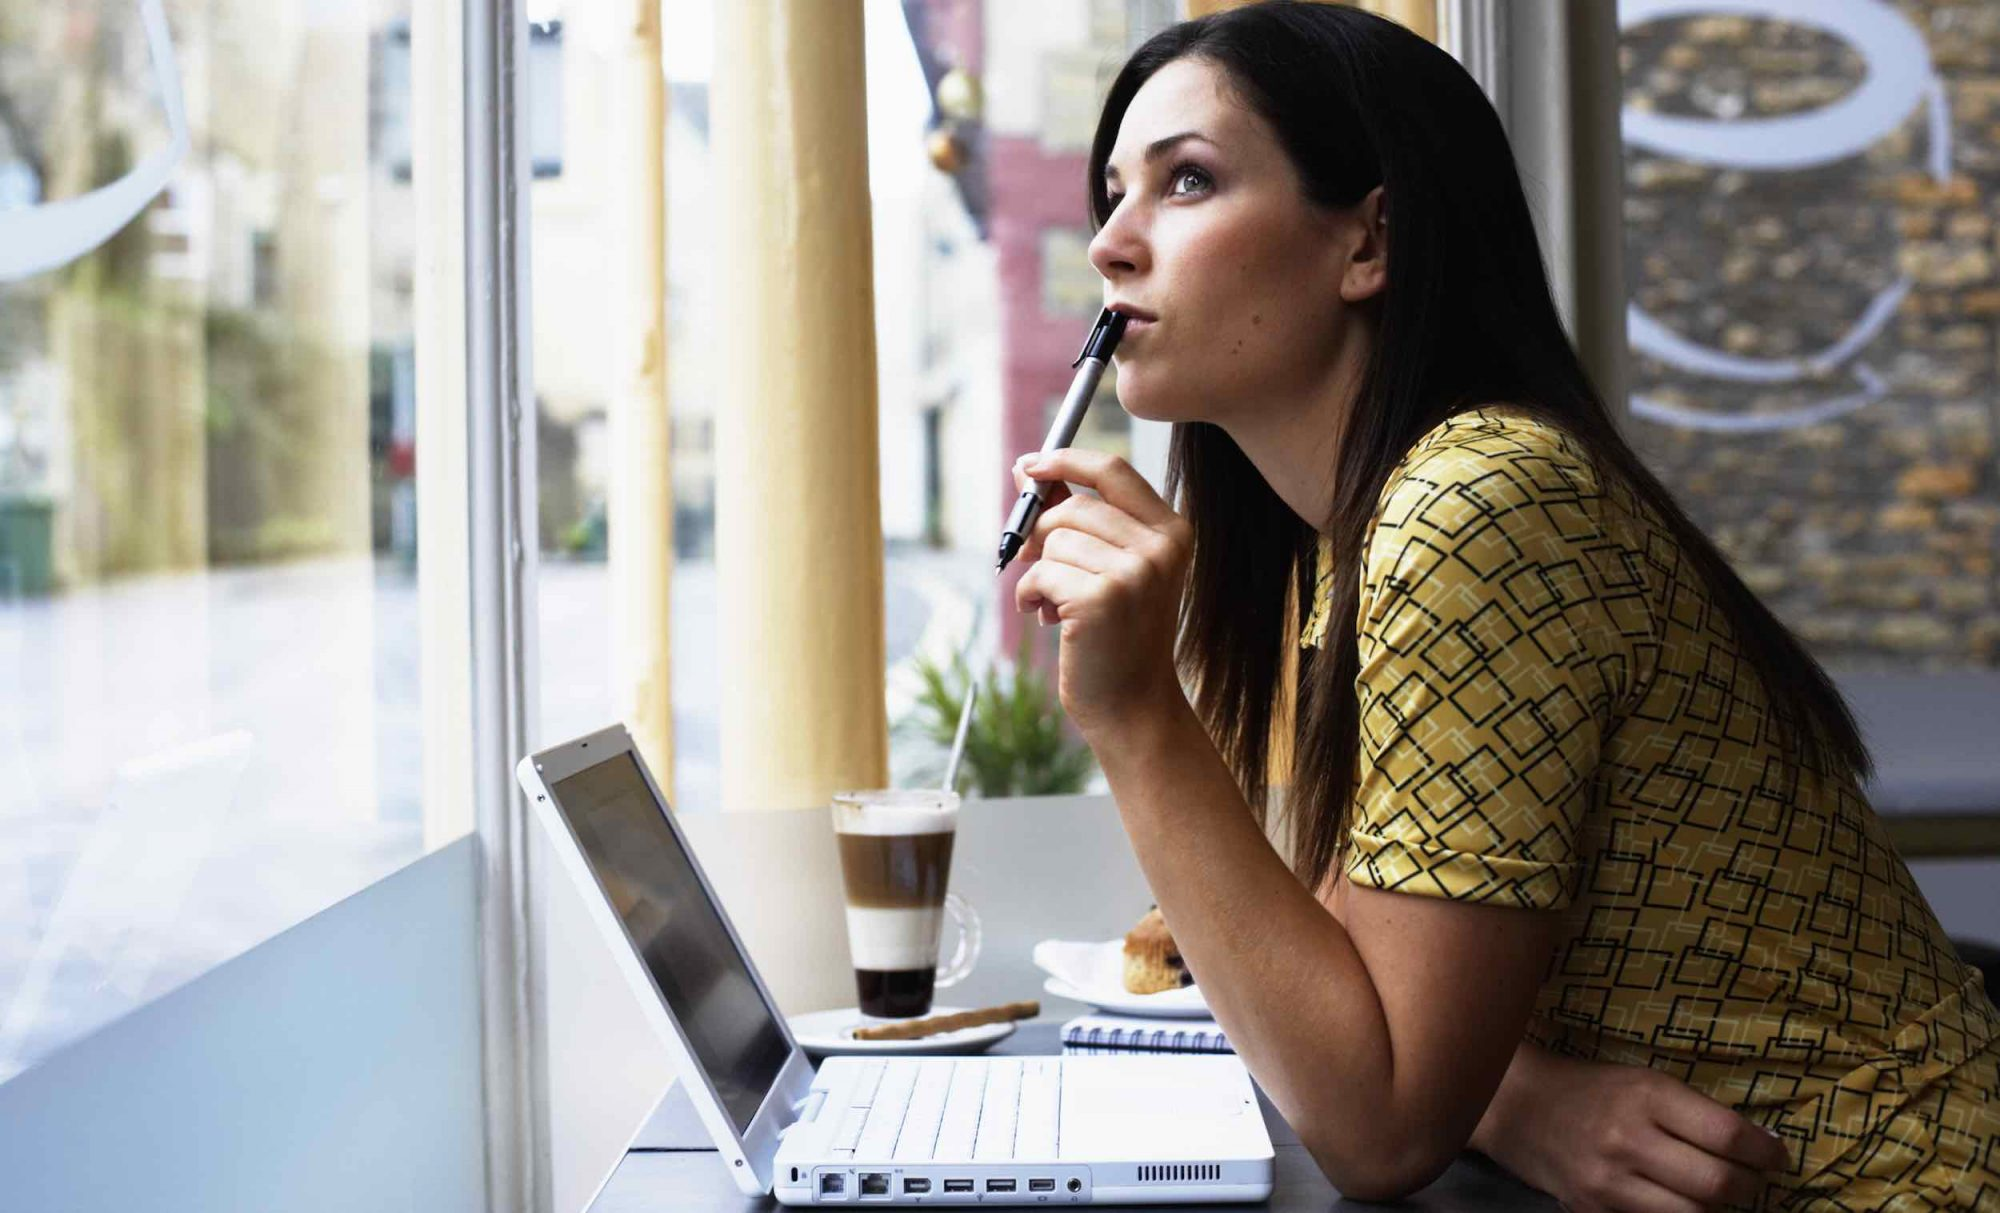 coffee shops less distracting than office